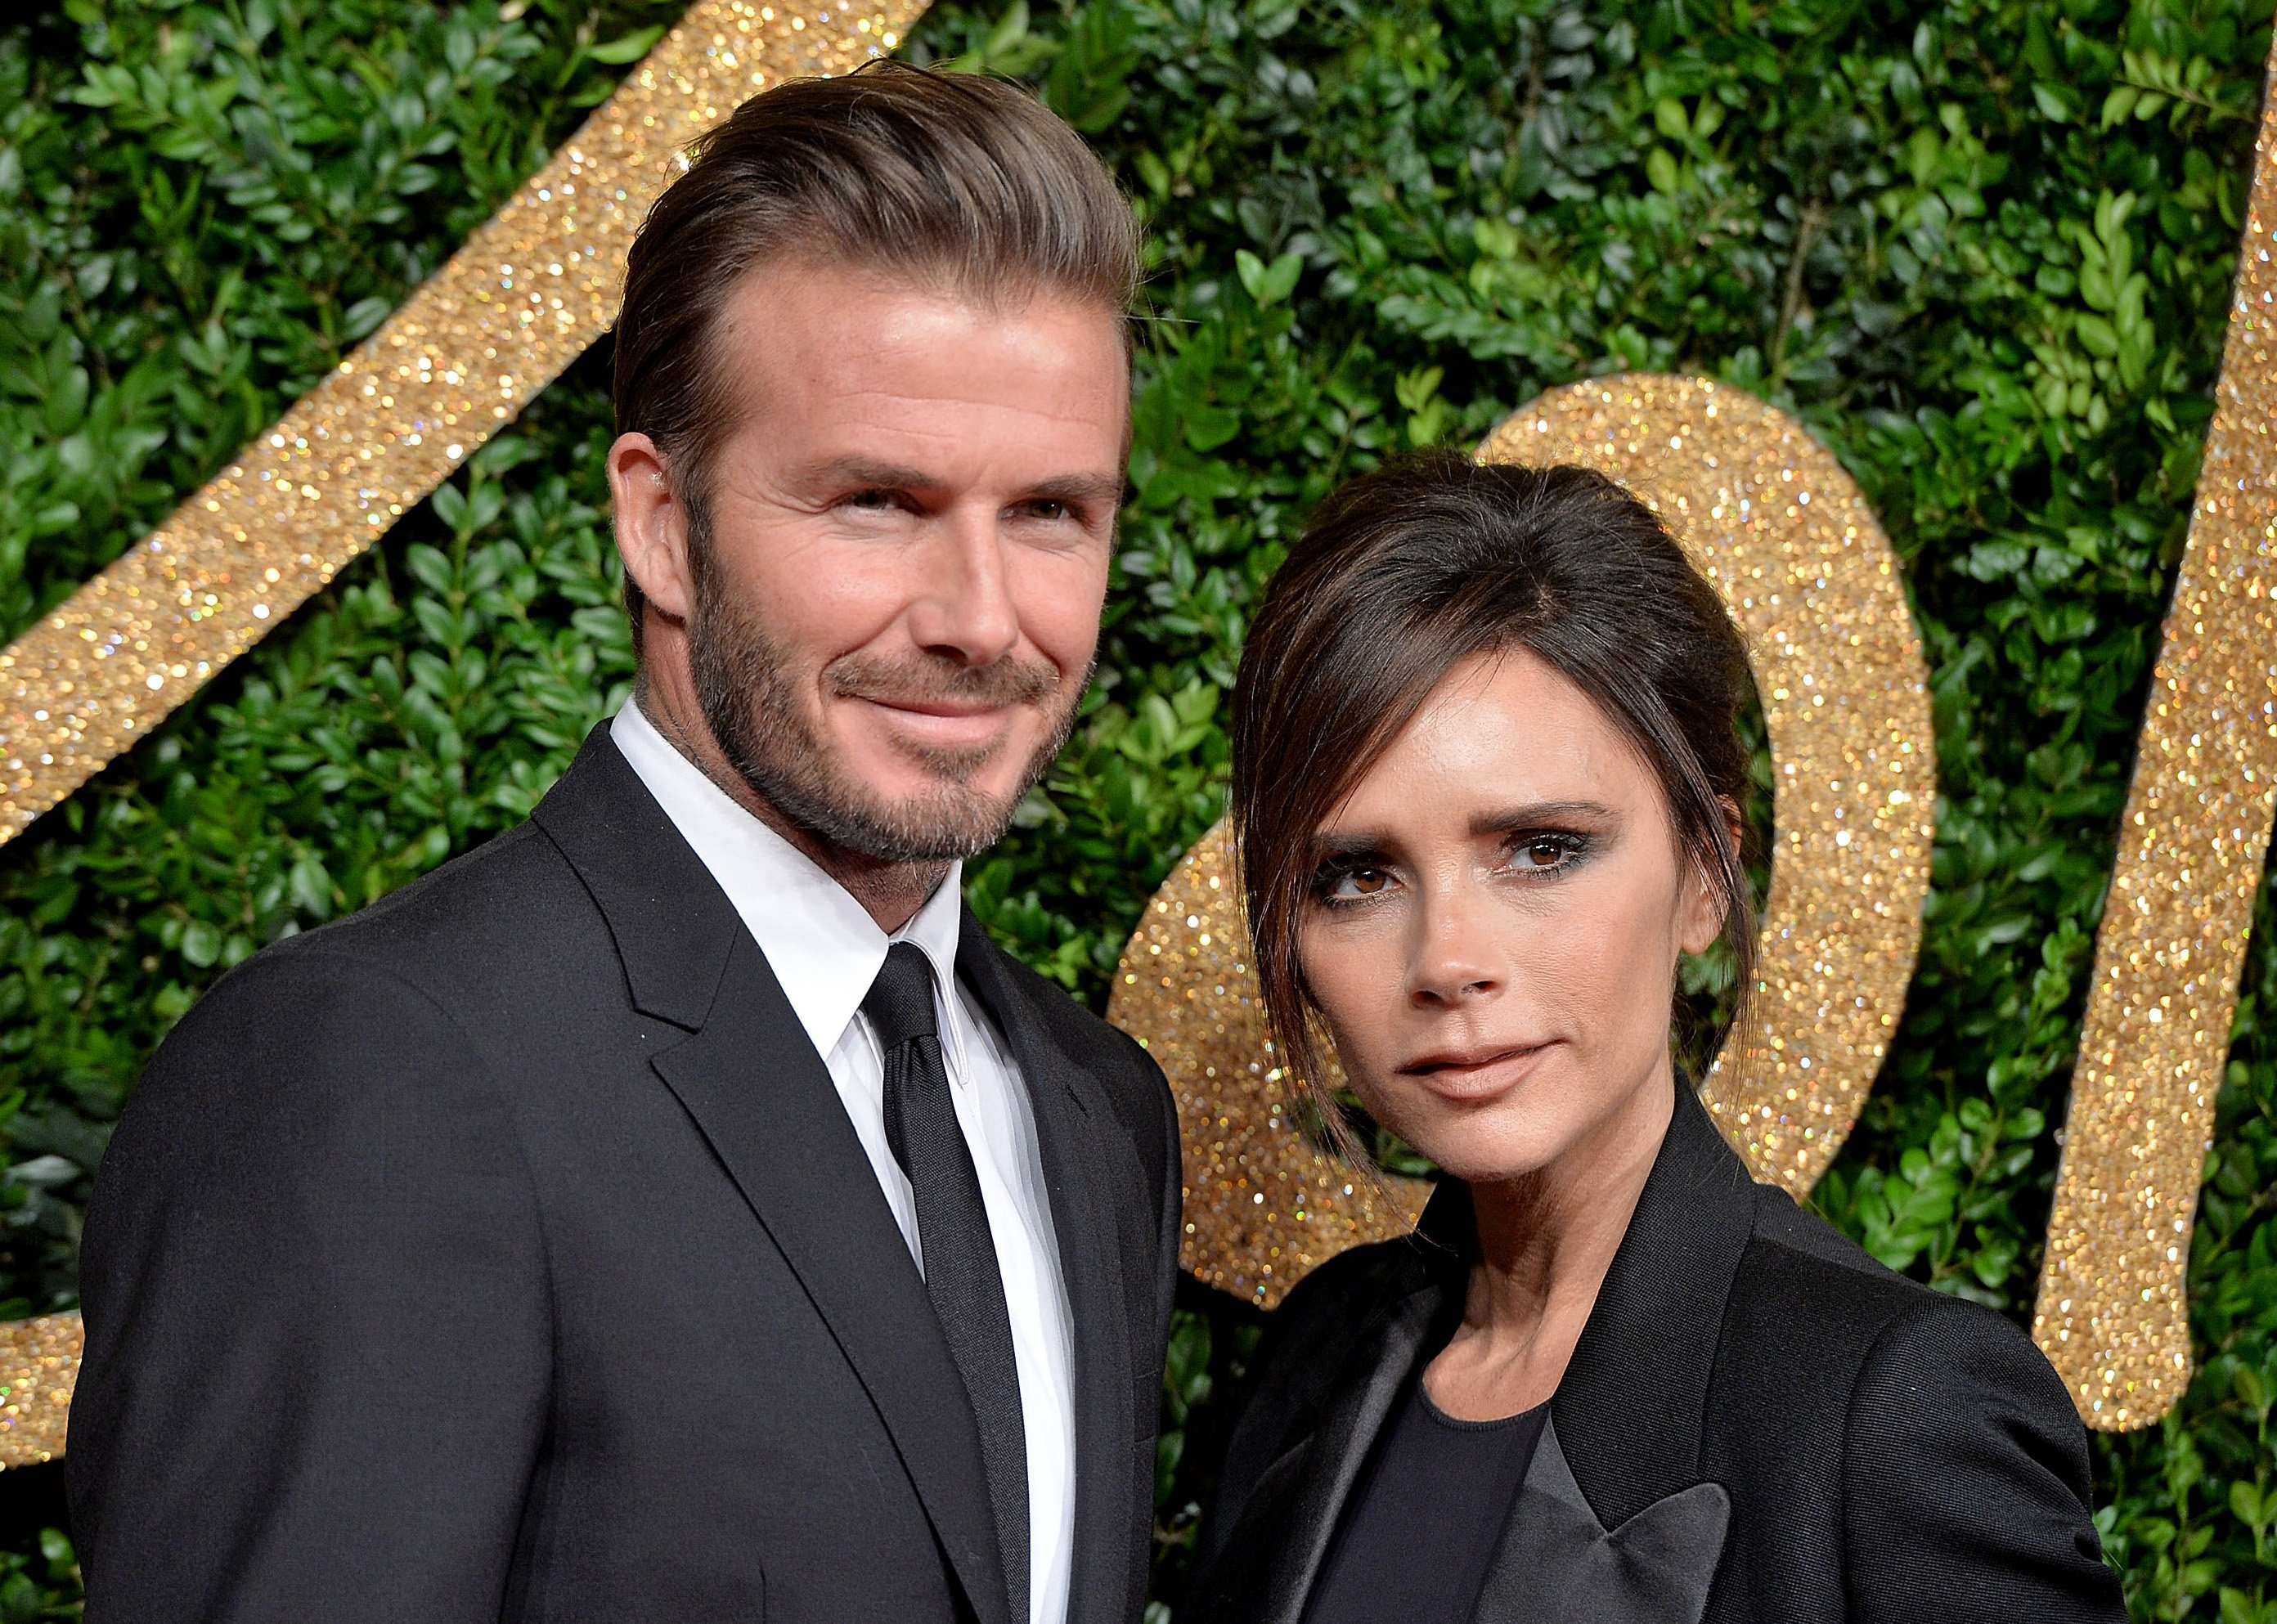 The power couple Victoria and David Beckham.